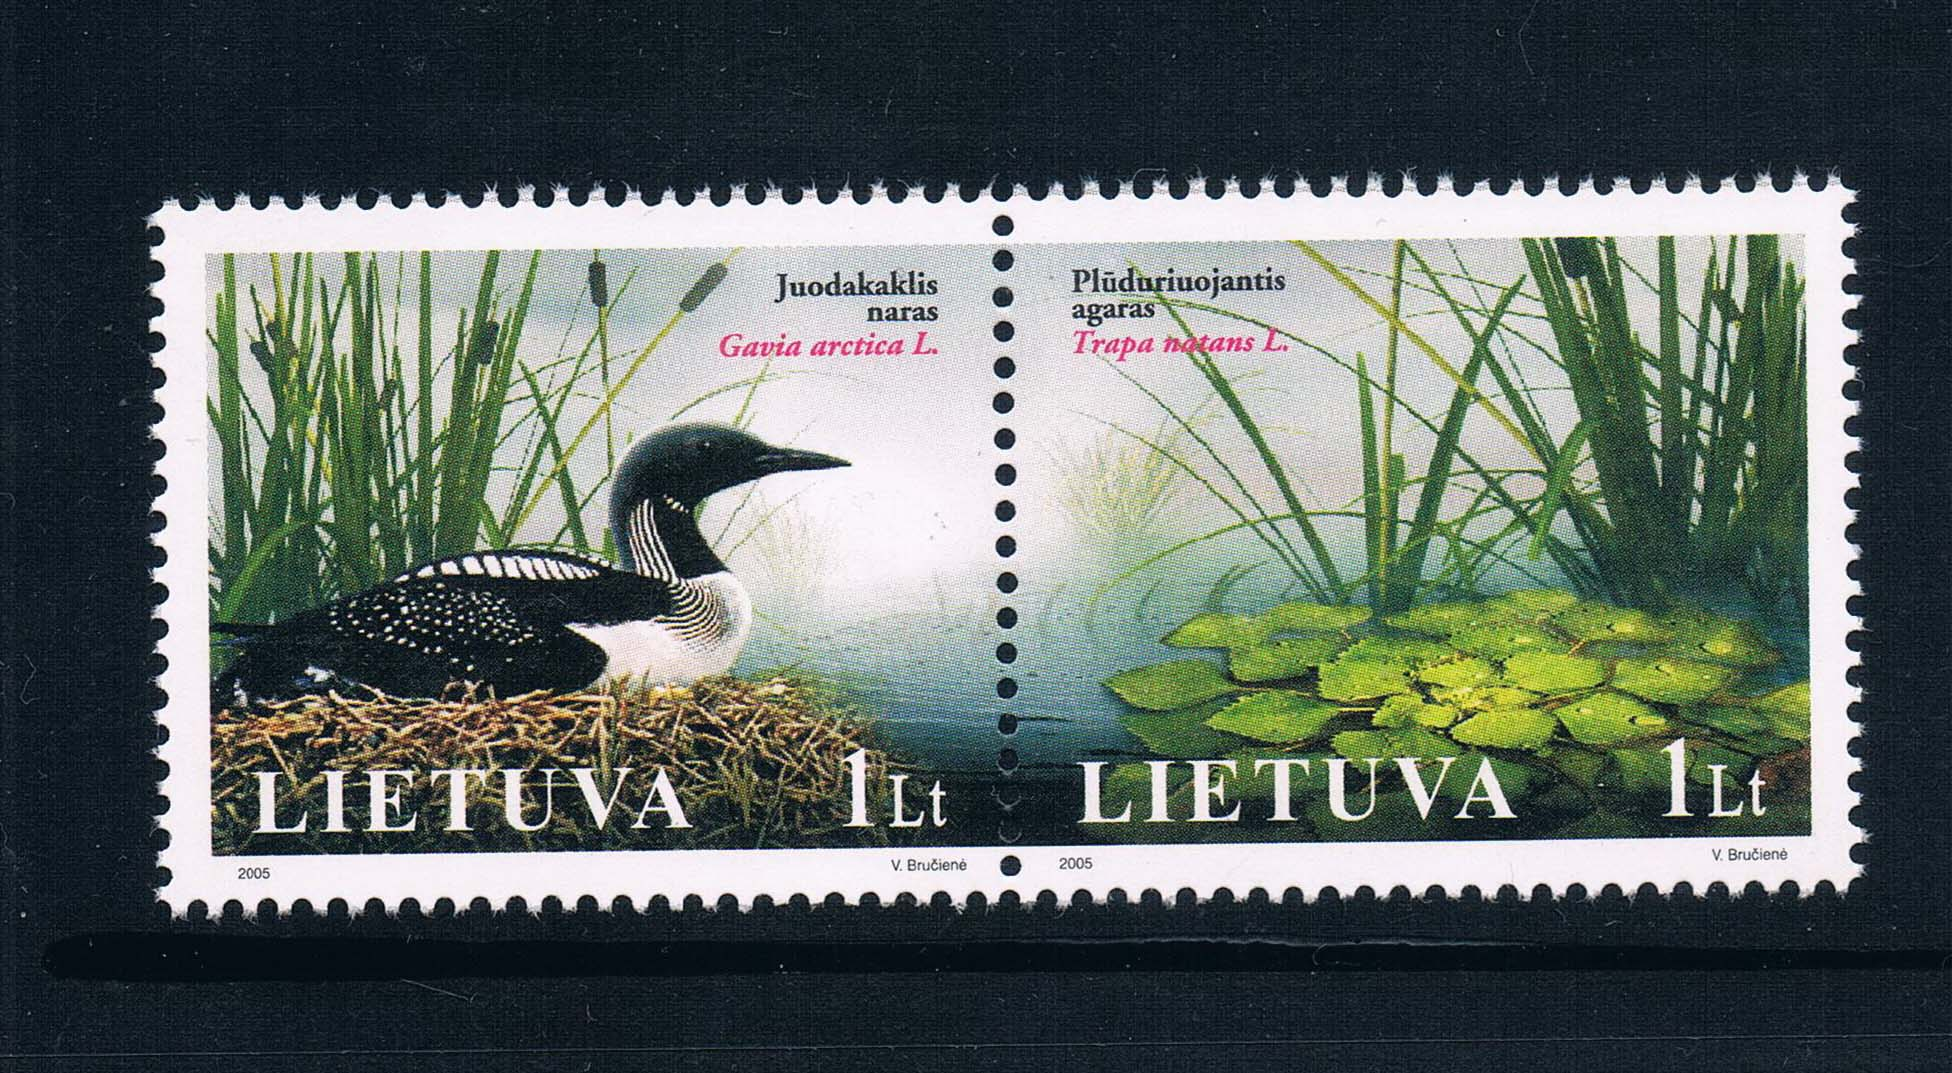 BS0238 Lithuania 2005 wetland bird stamps 2 new 0209 from 2012 ea1420 1ms new 0626 coastal bird stamps